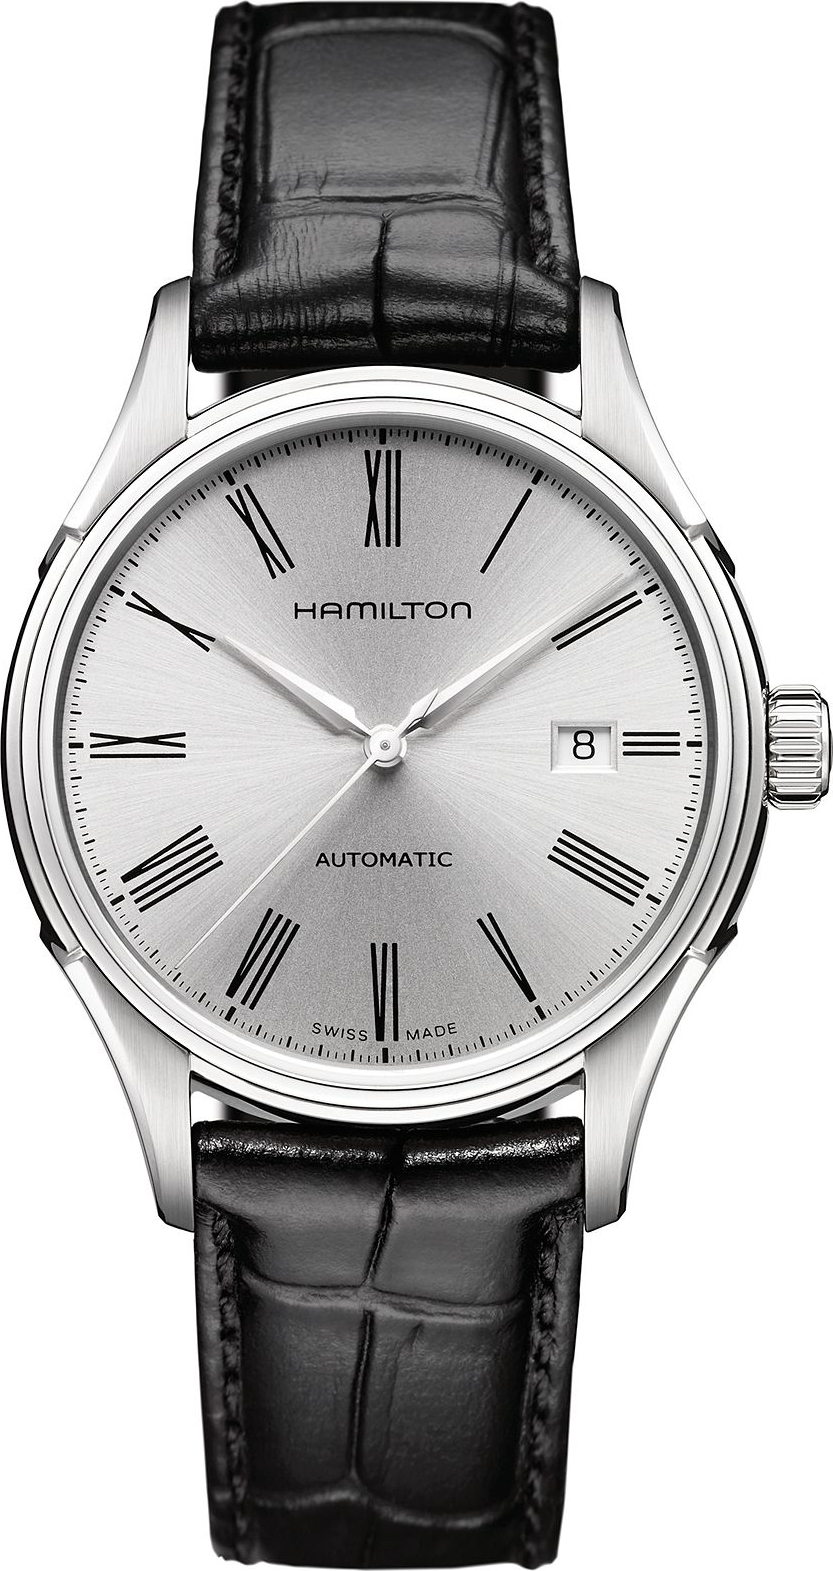 Hamilton AMERICAN CLASSIC VALIANT Automatic Watch 40mm